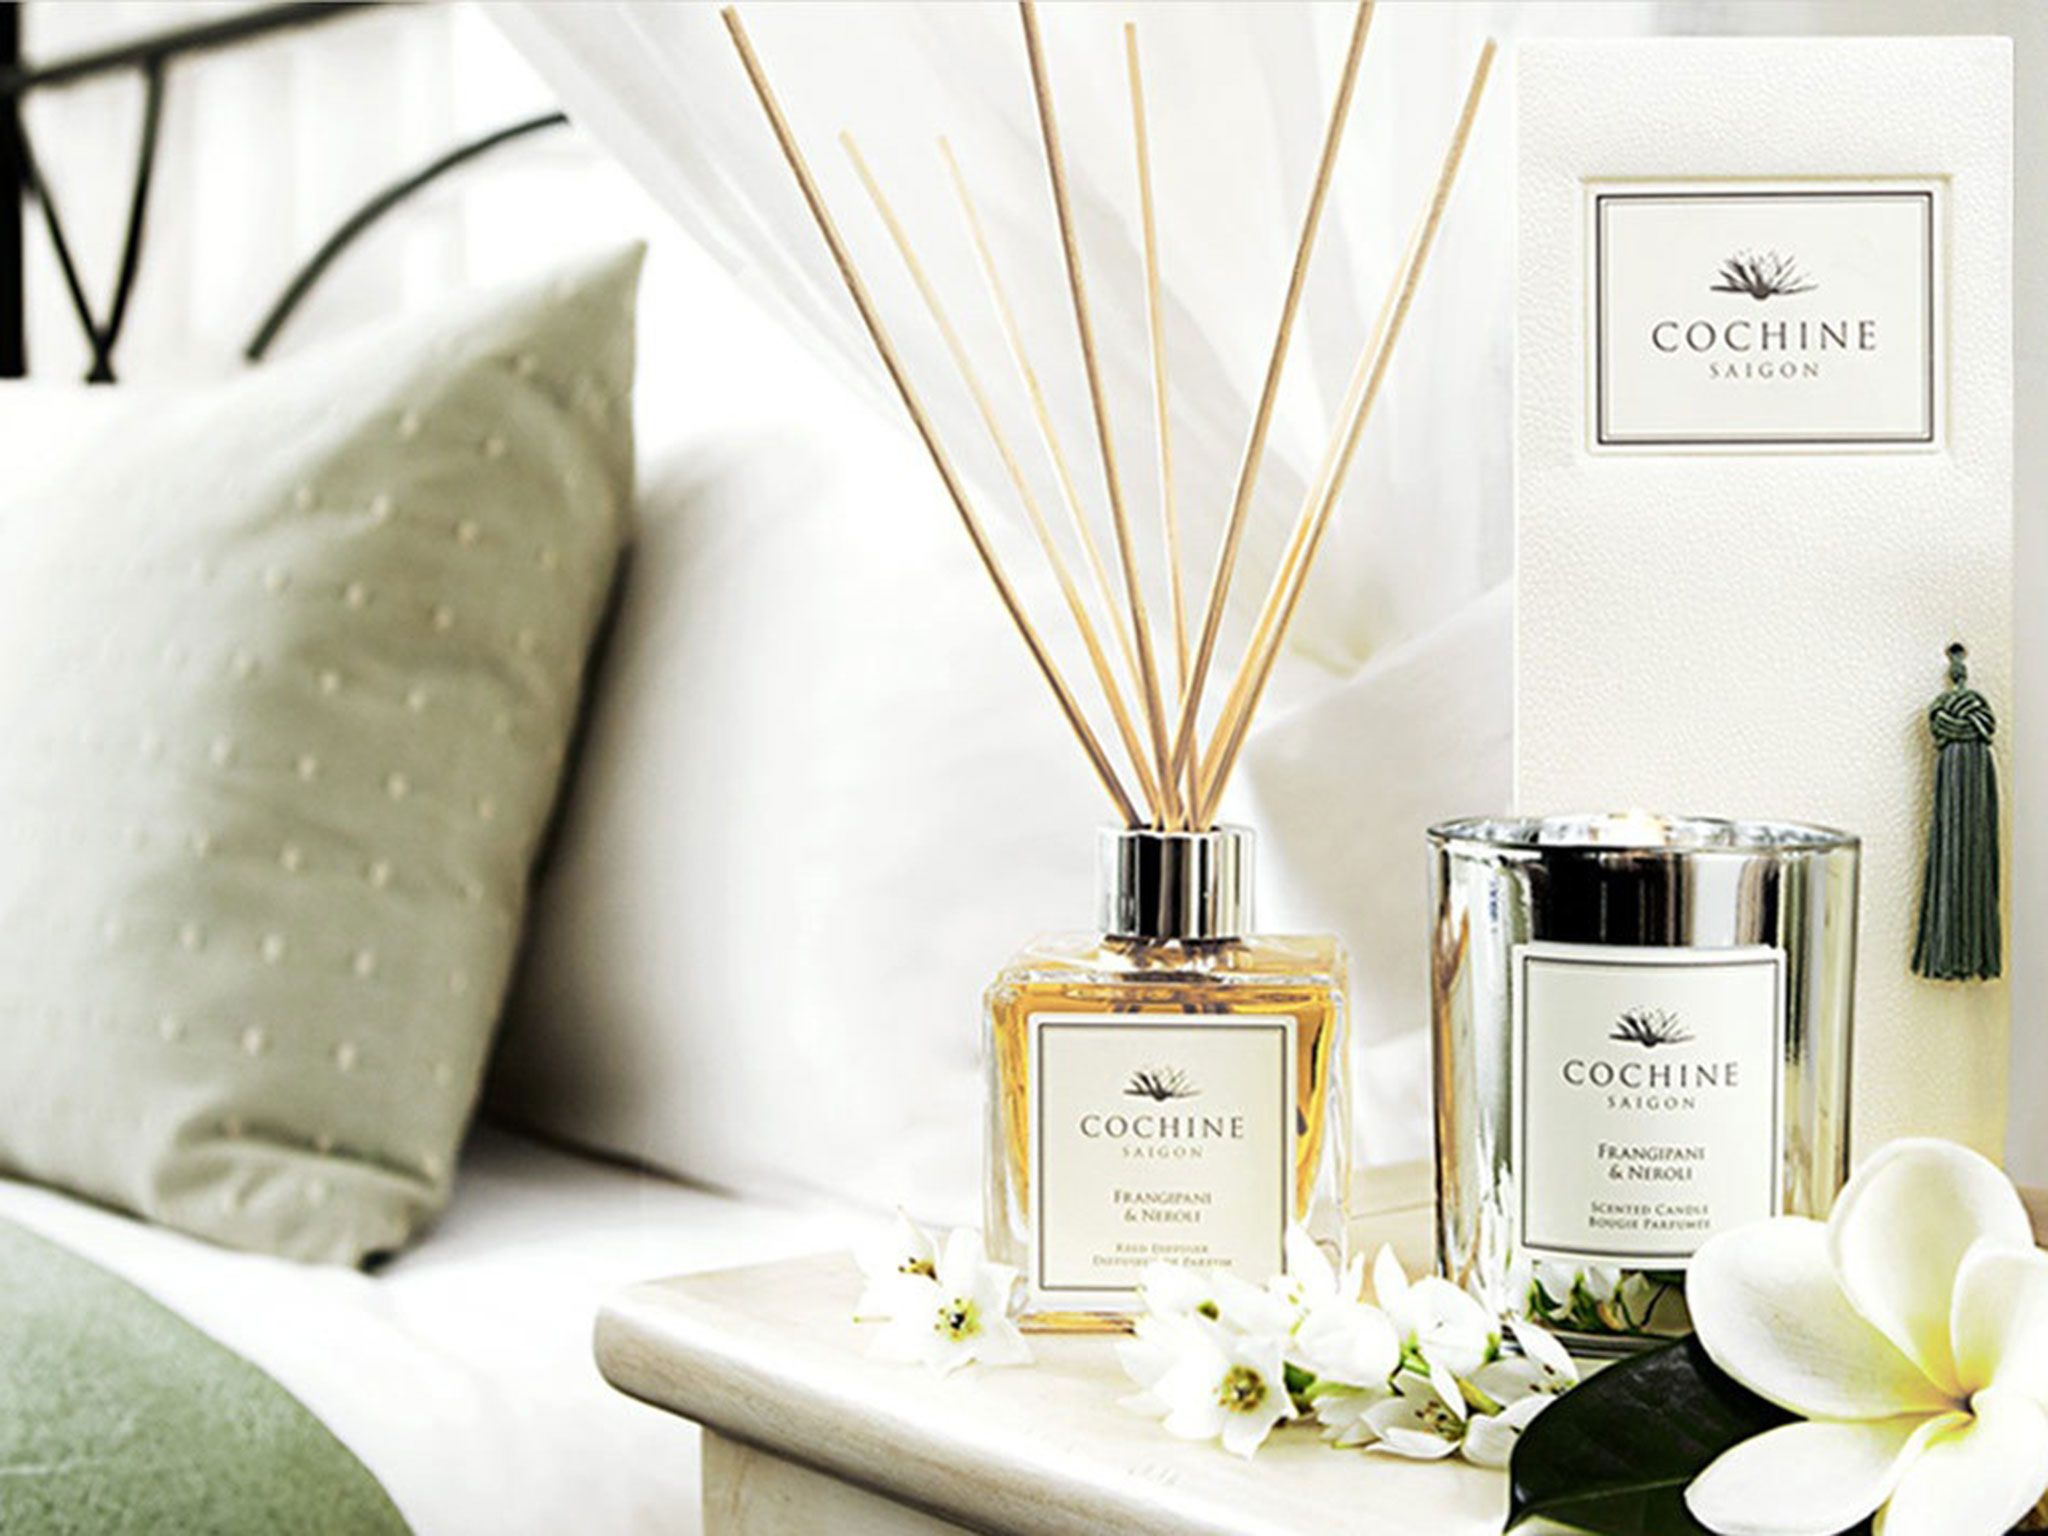 10 best reed diffusers - House & Garden - IndyBest - The Independent